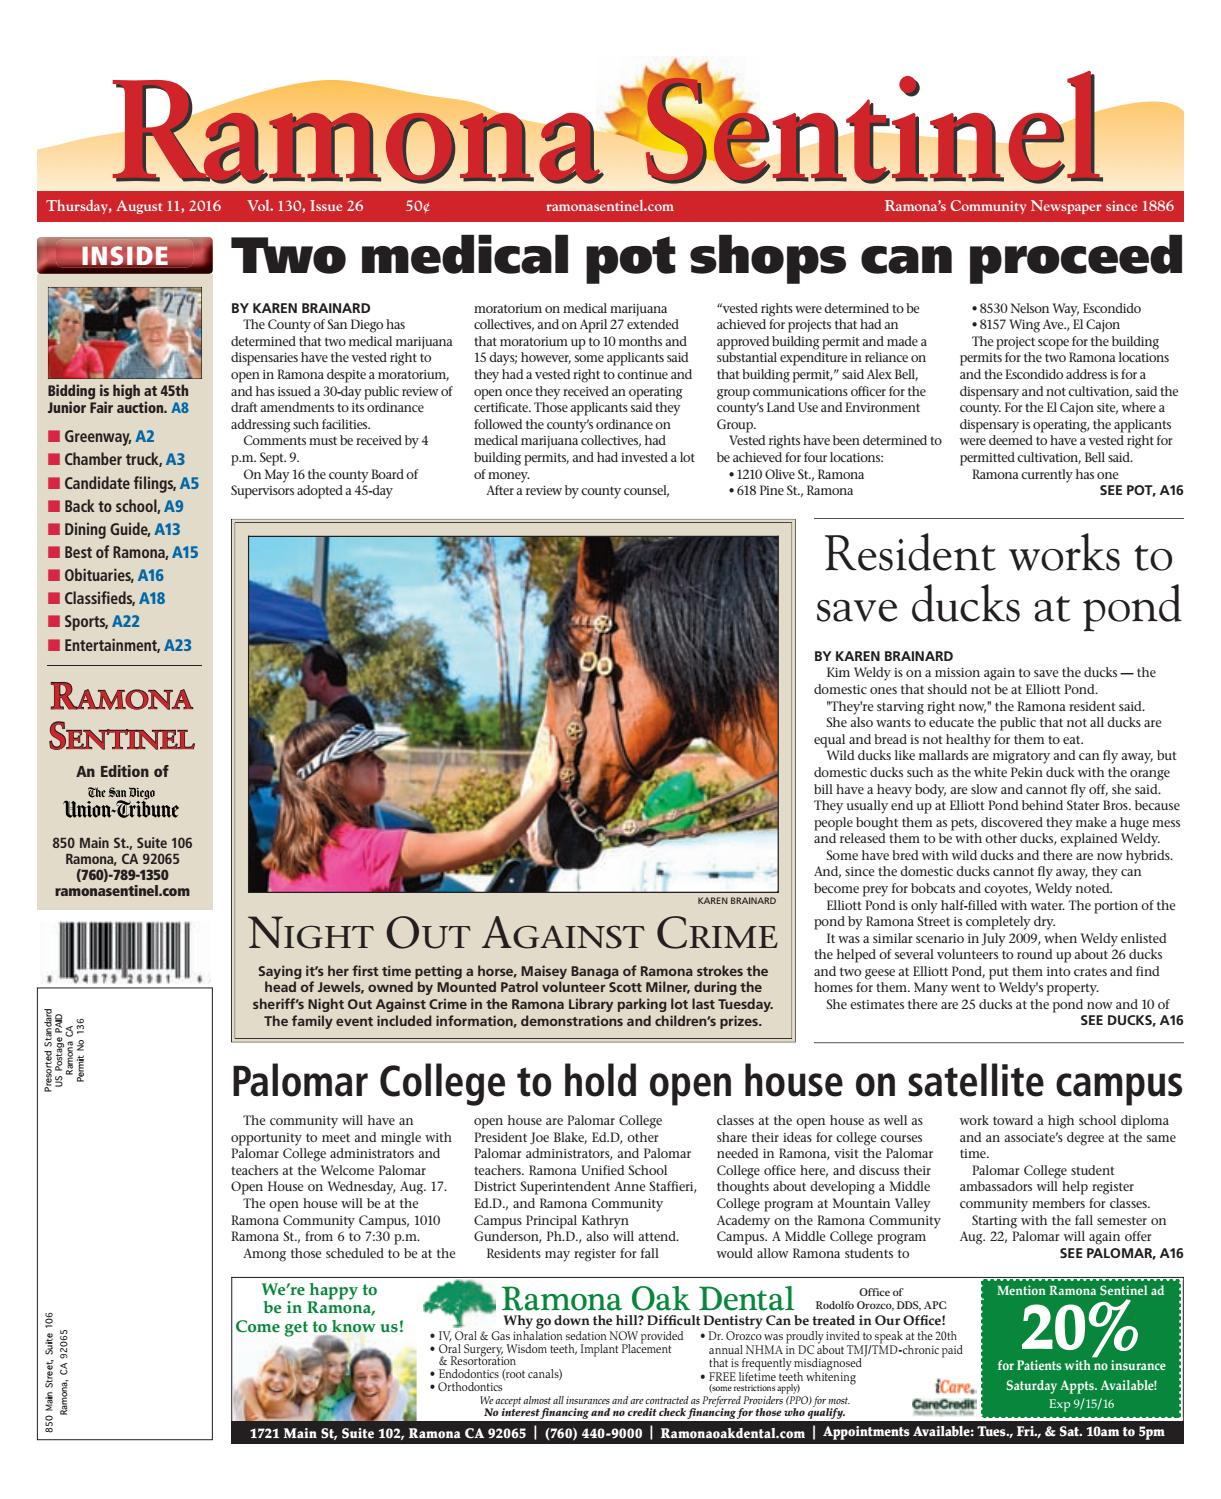 Ramona sentinel 08 11 16 by MainStreet Media - issuu